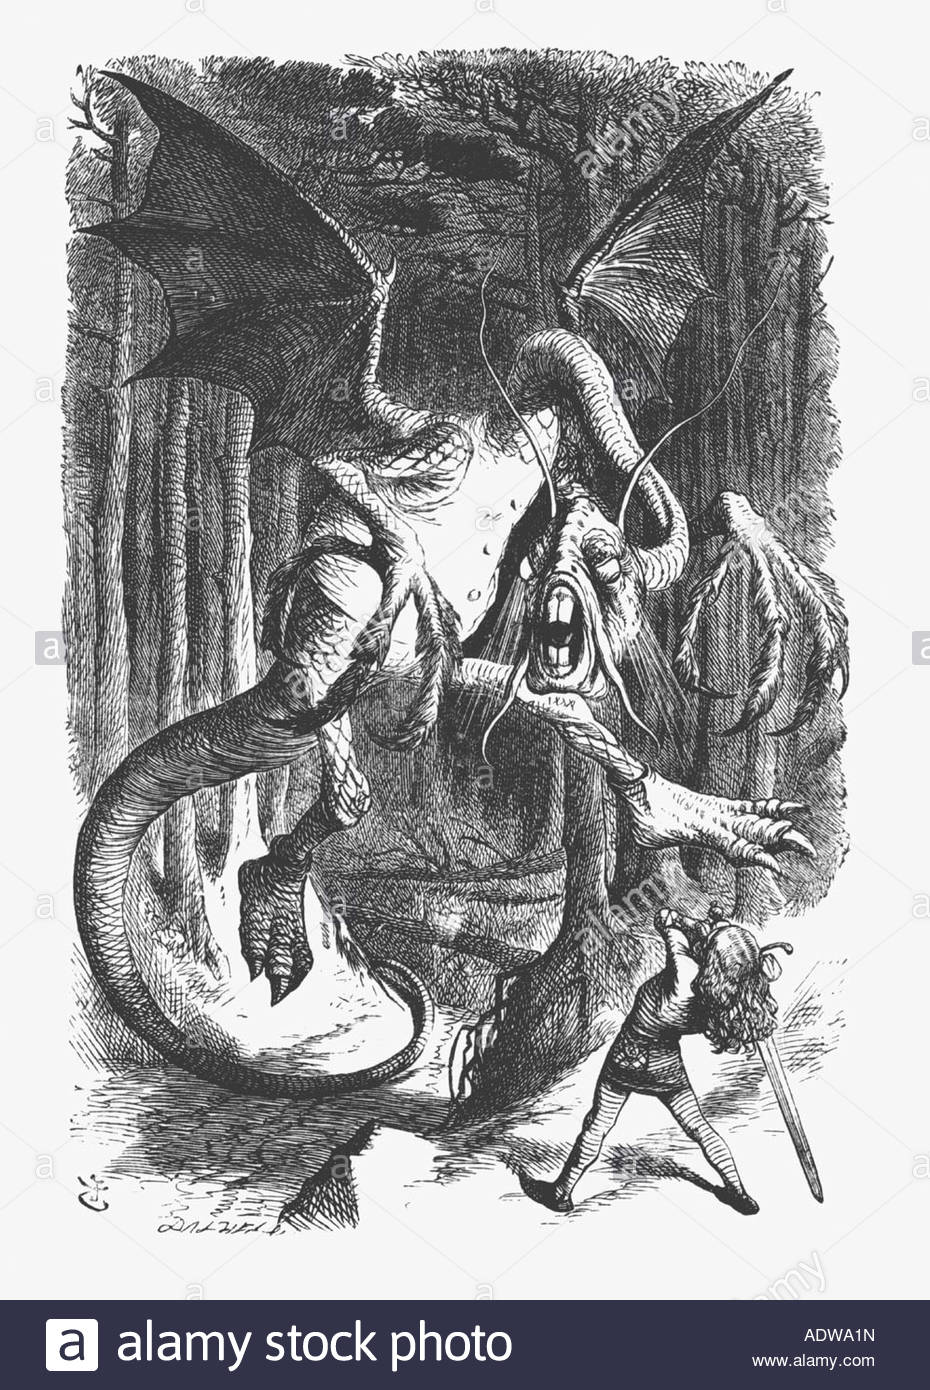 illustration-of-the-jabberwock-from-lewis-carroll-s-alice-through-ADWA1N